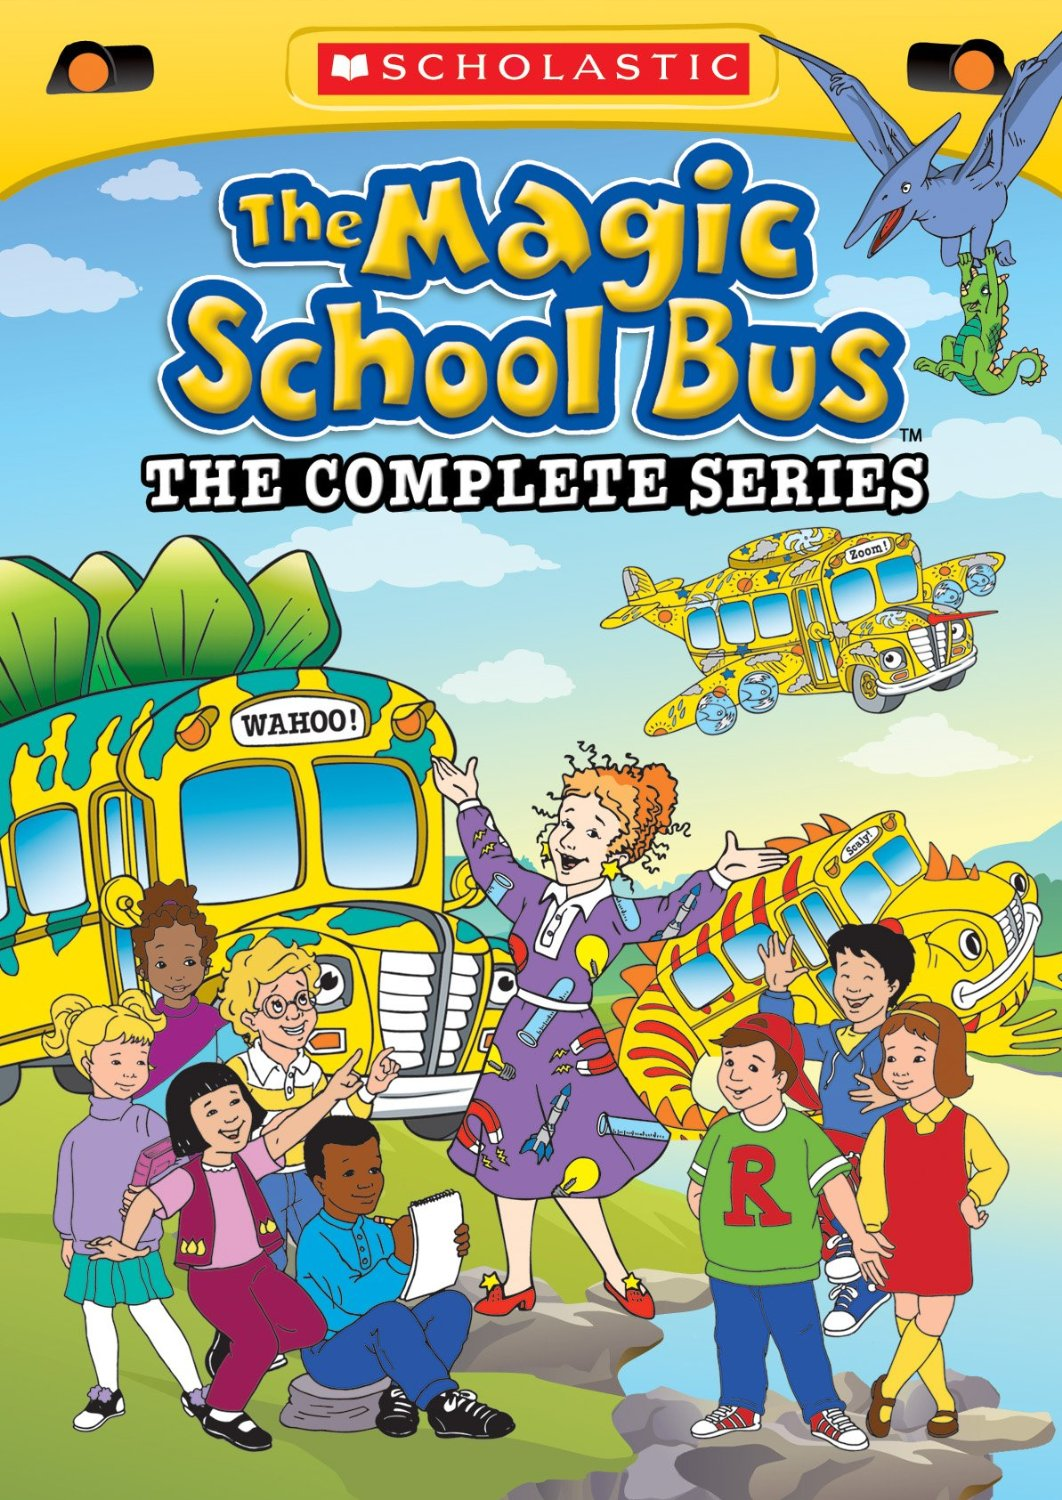 Complete Magic School Bus DVD Series Only $33! (Reg. $80!)